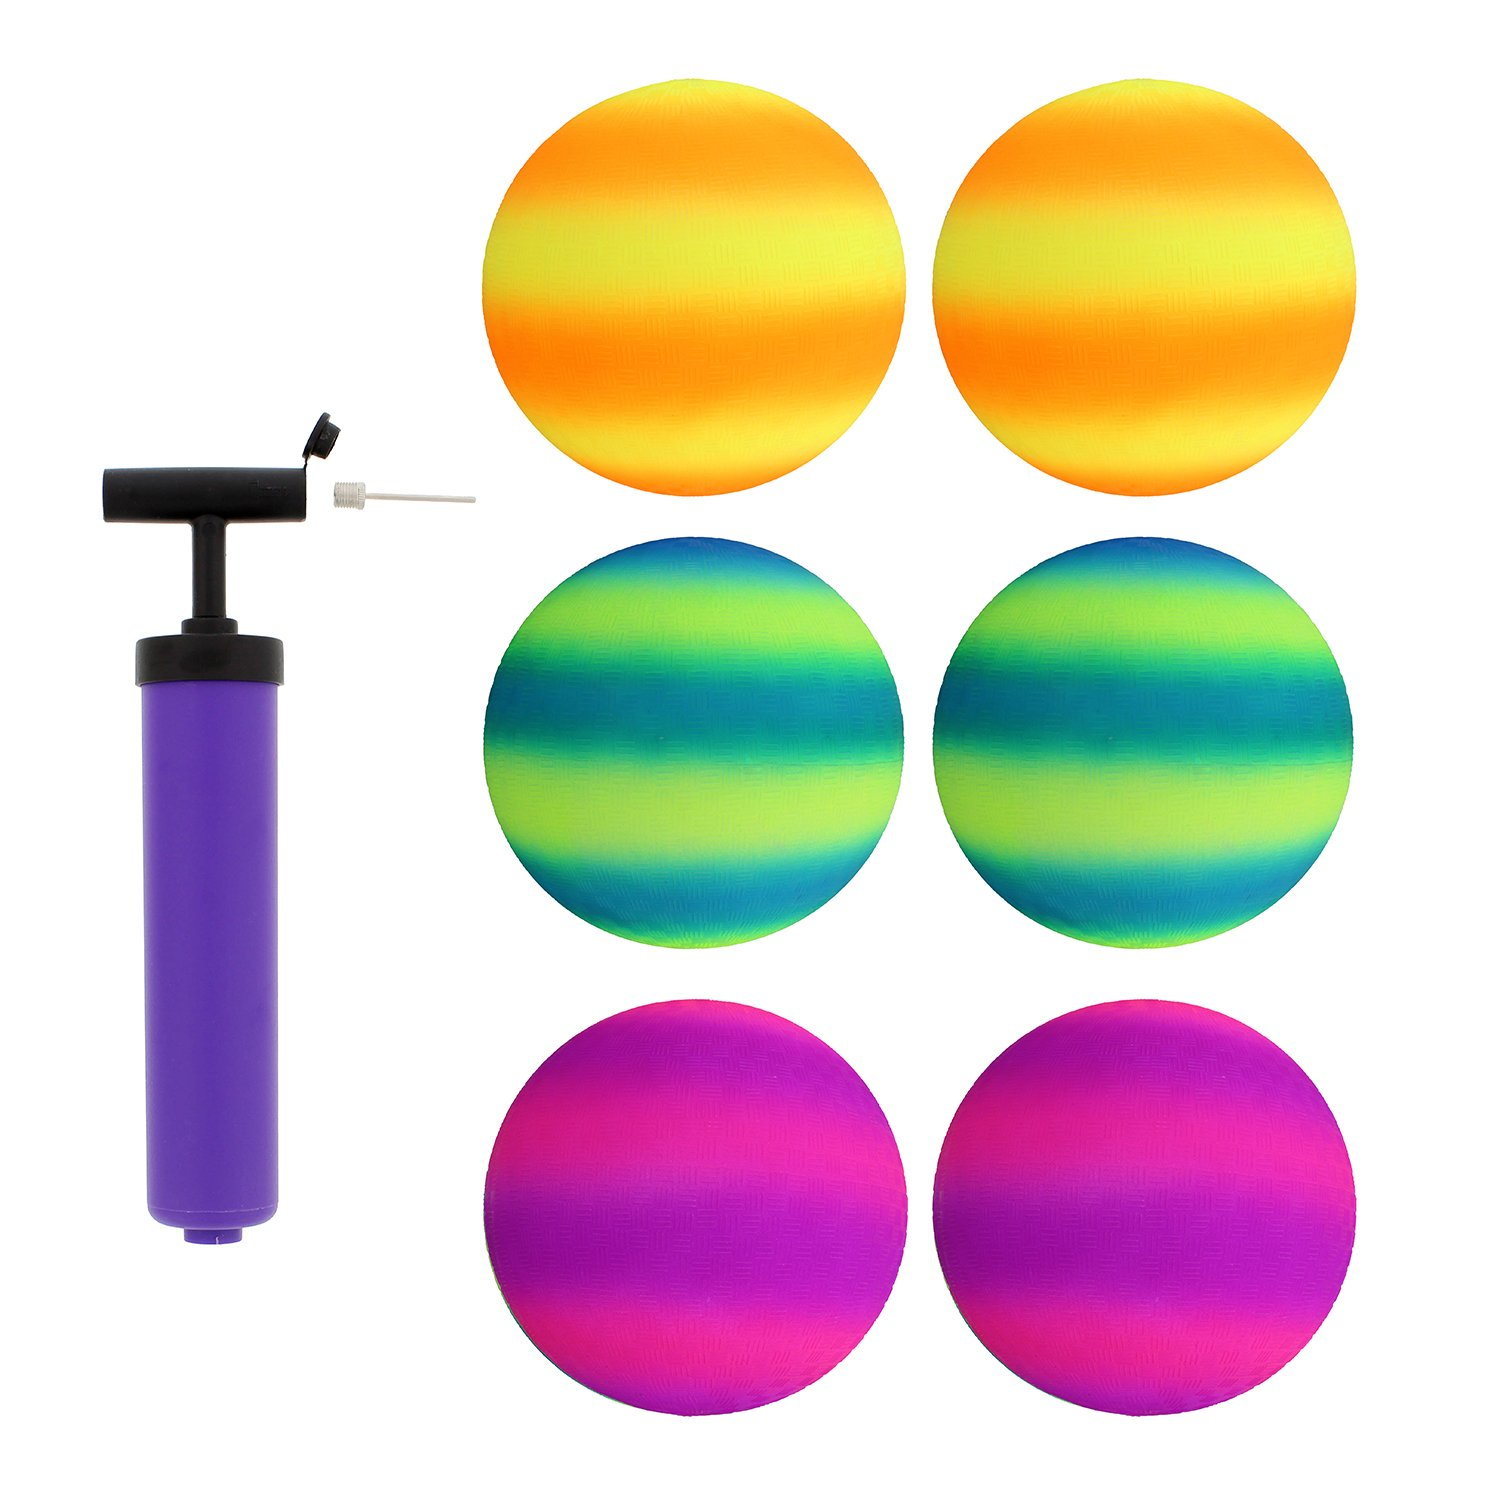 Get Out! Rubber Play Ball 6pk & Inflator, 8.5in (3) 2-Toned Pairs - Small Playground Ball Four Square Balls & Pump by Get Out!